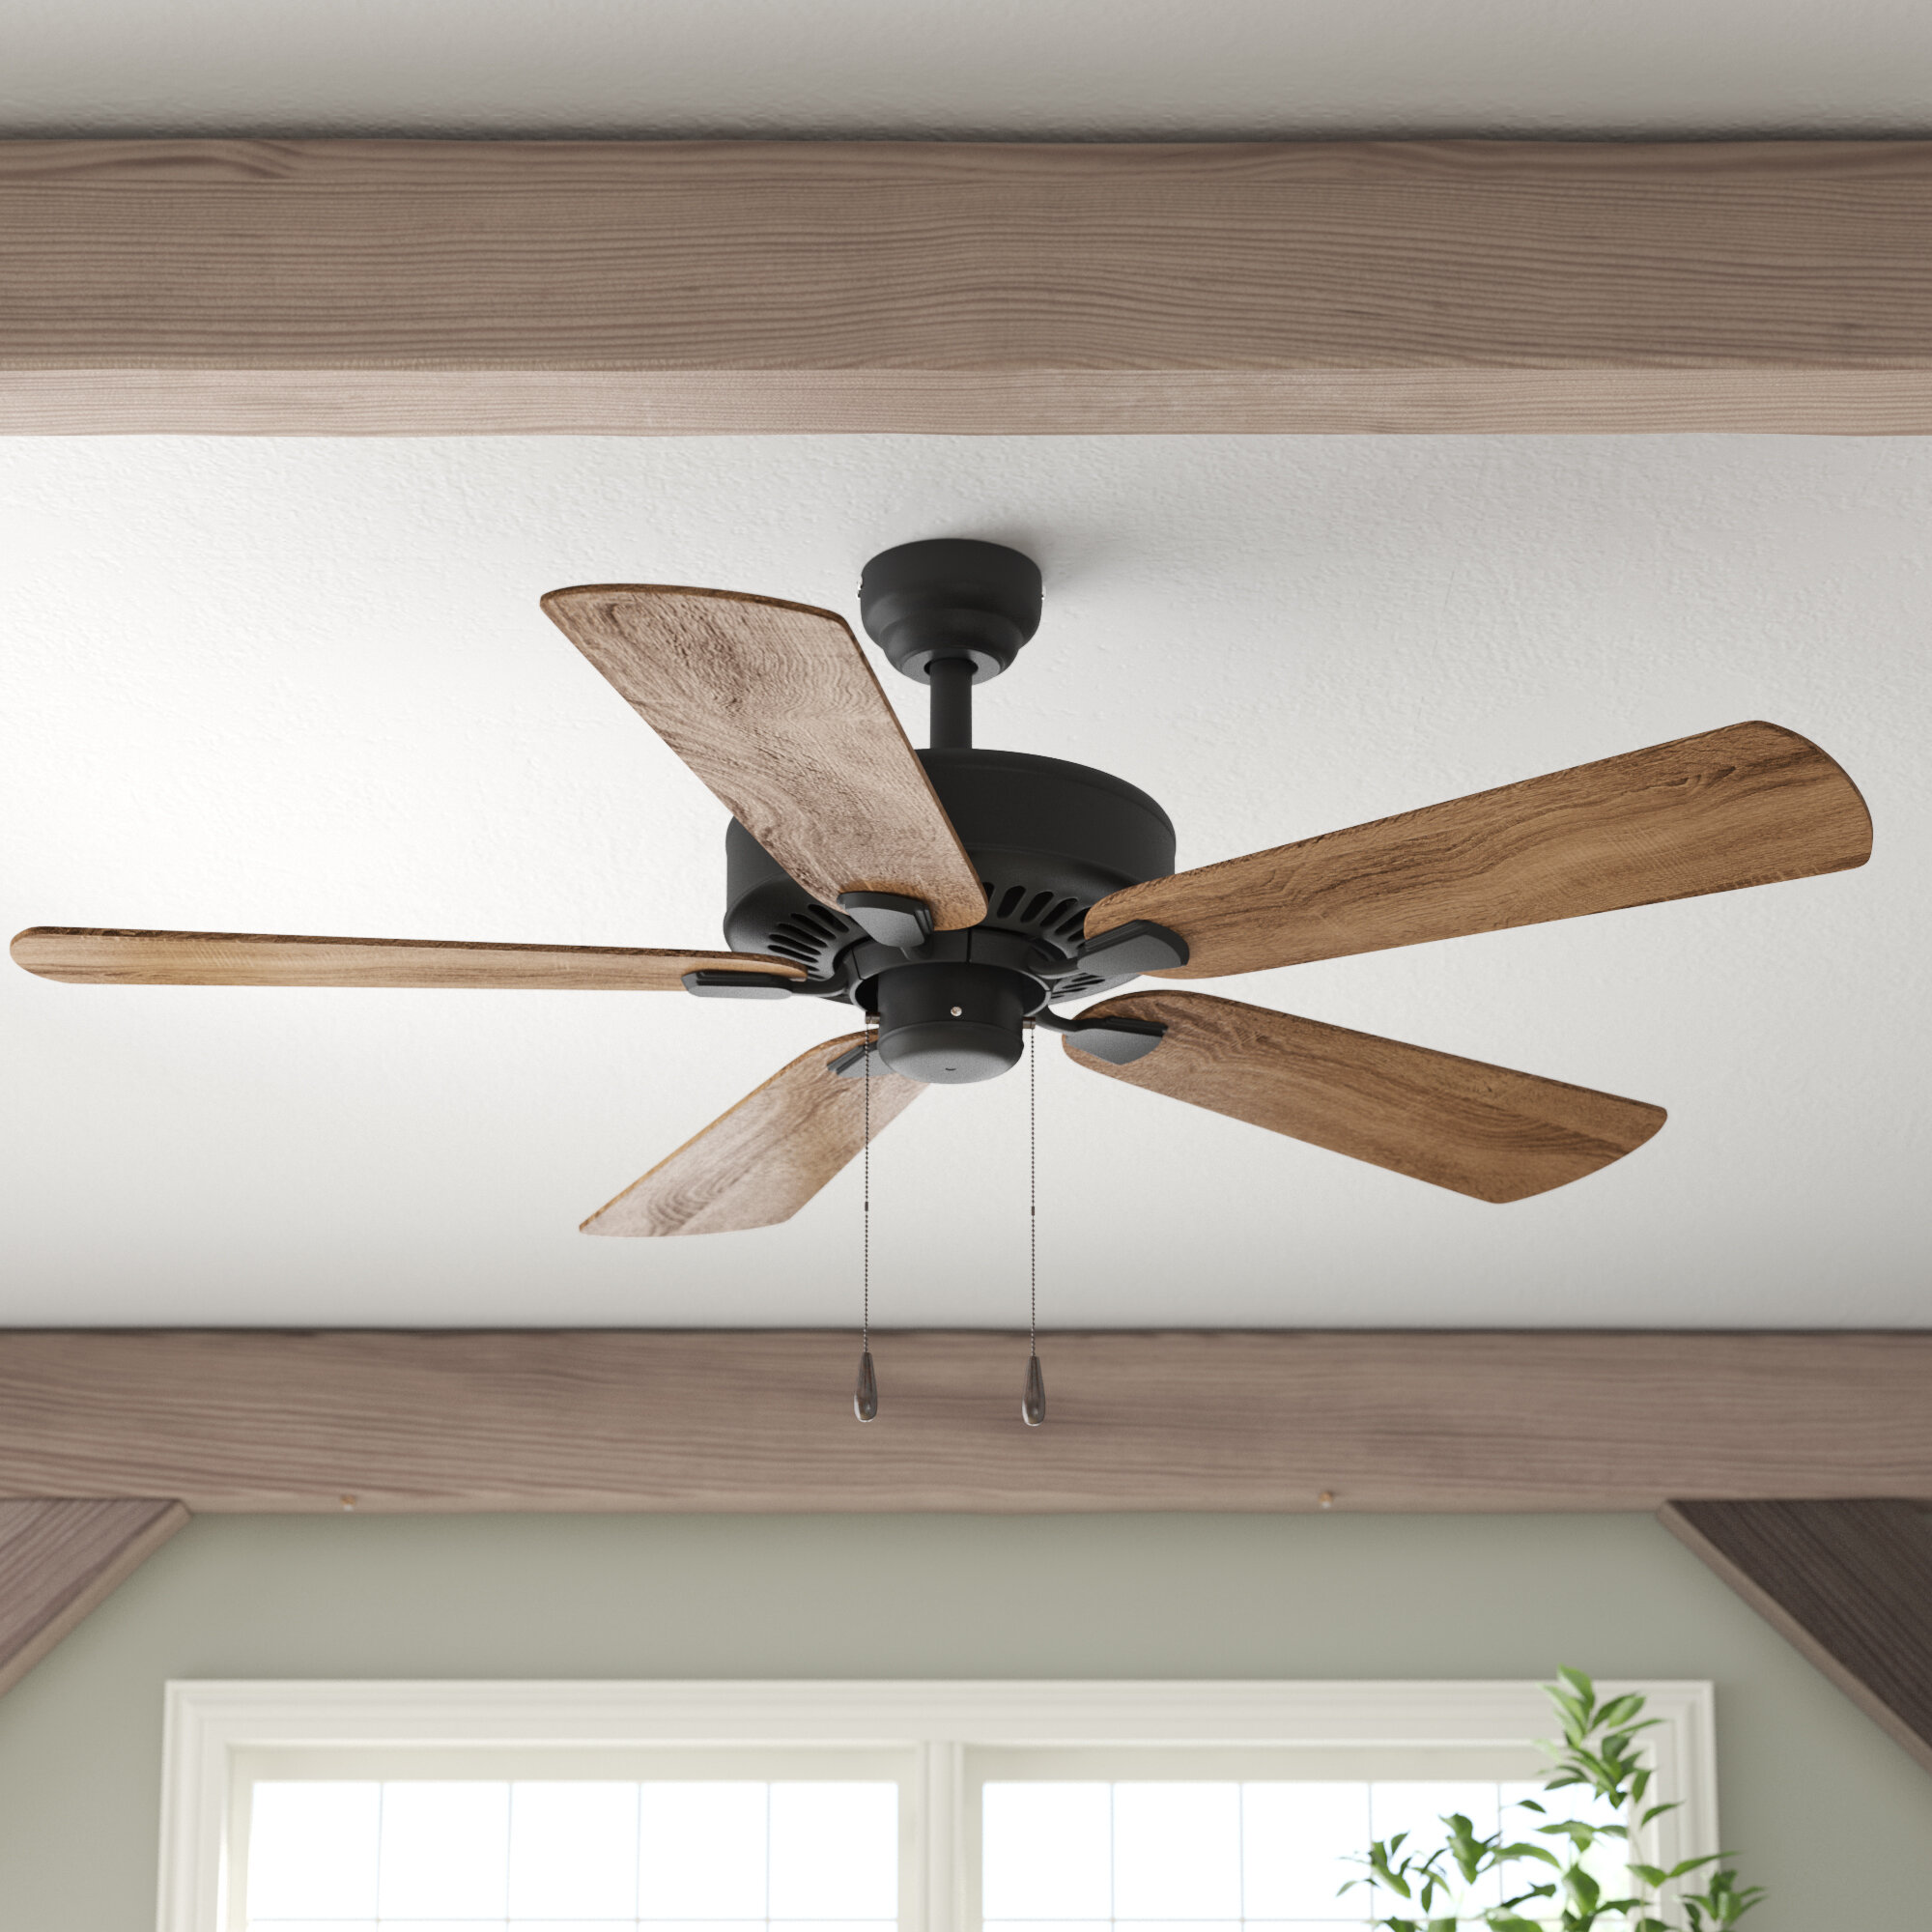 Flush Mount Hugger Low Profile Ceiling Fans You Ll Love In 2021 Wayfair